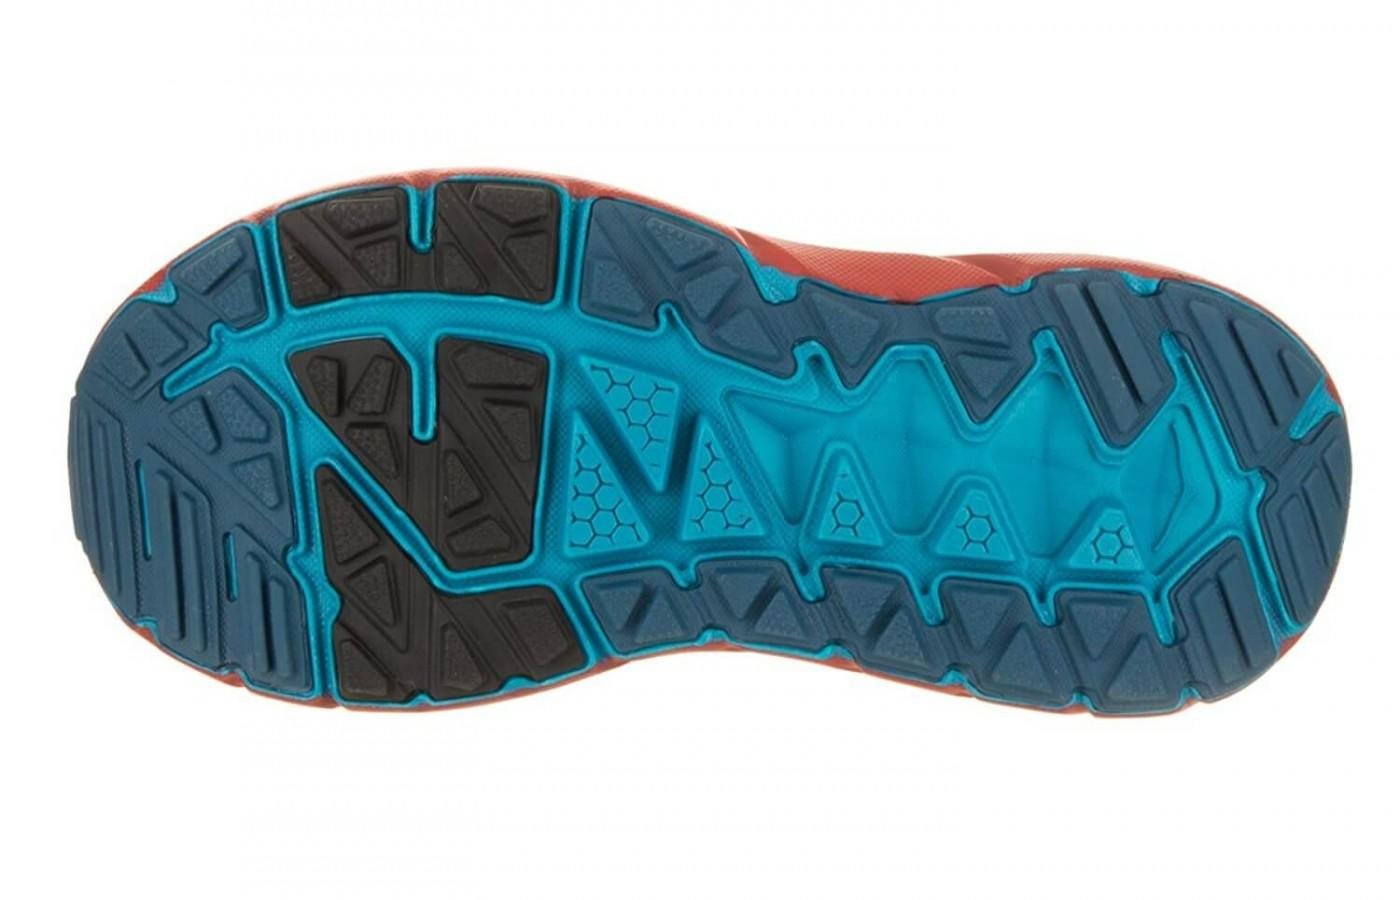 The unique outsole of the Hoka One One Stinson ATR 4 allows the runner to take them on the road or the trail